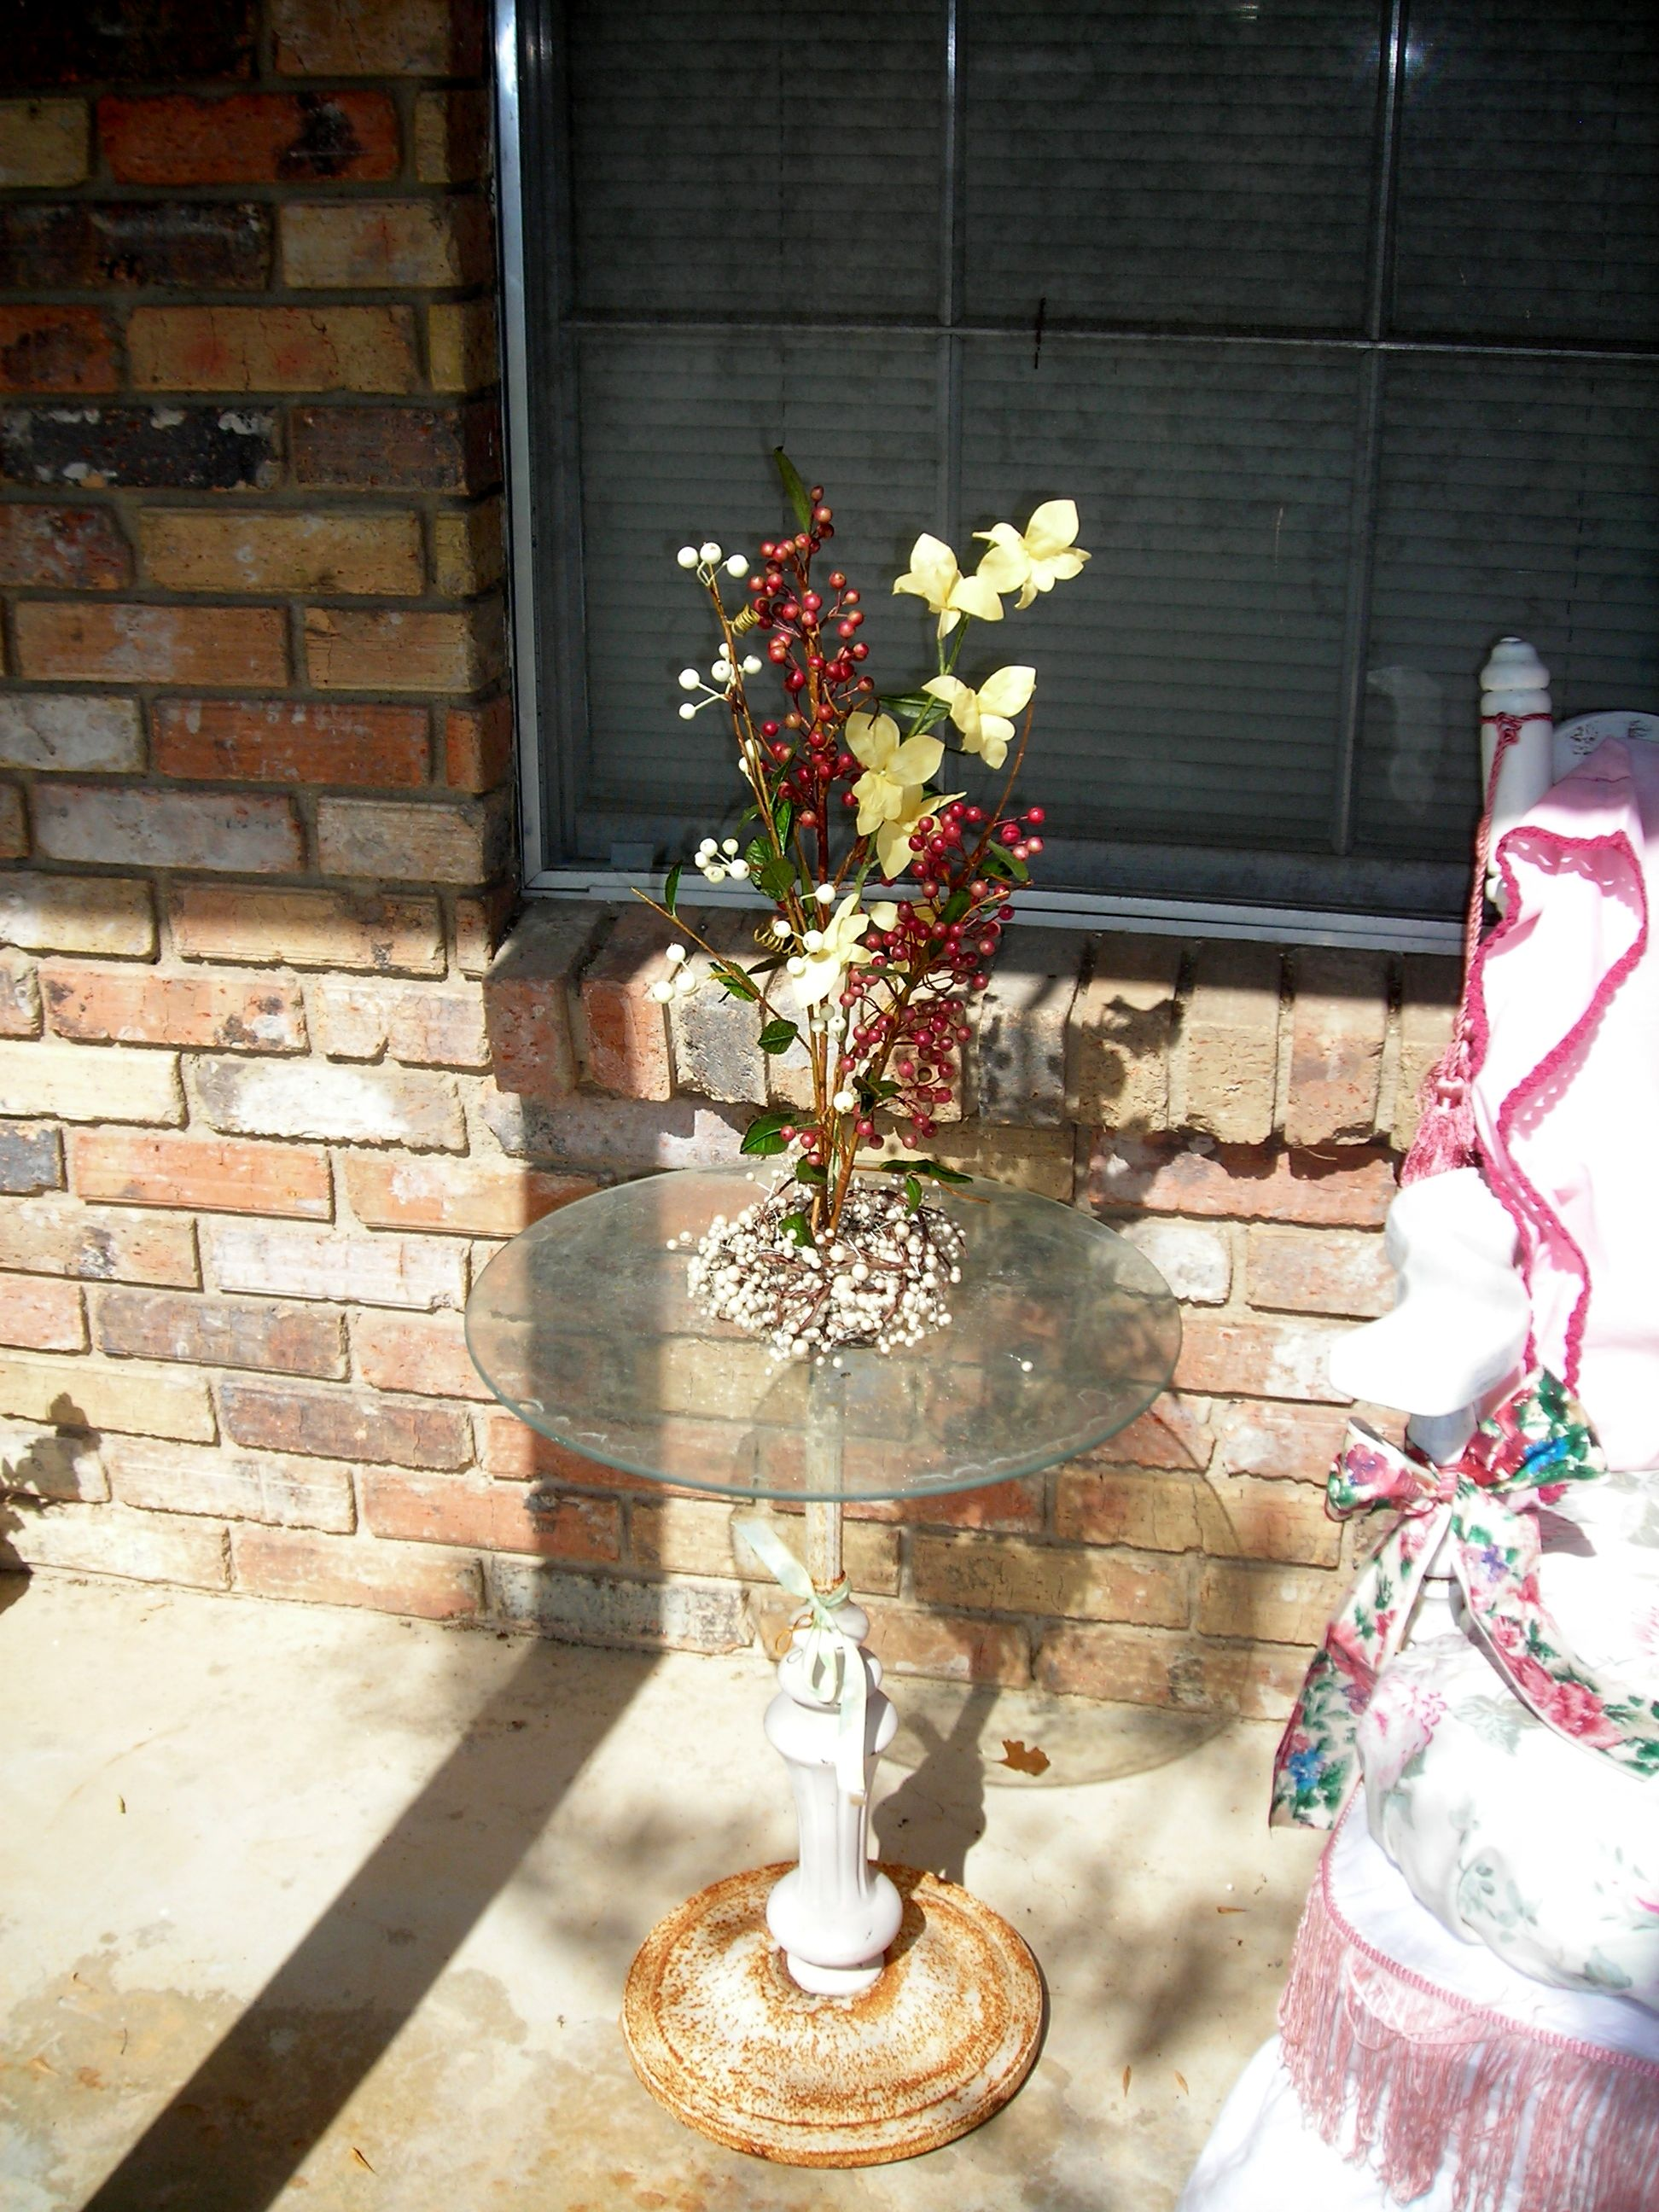 precious little table with glass top ... i stuffed some flowers into the center hole for an instant flower arrangement!